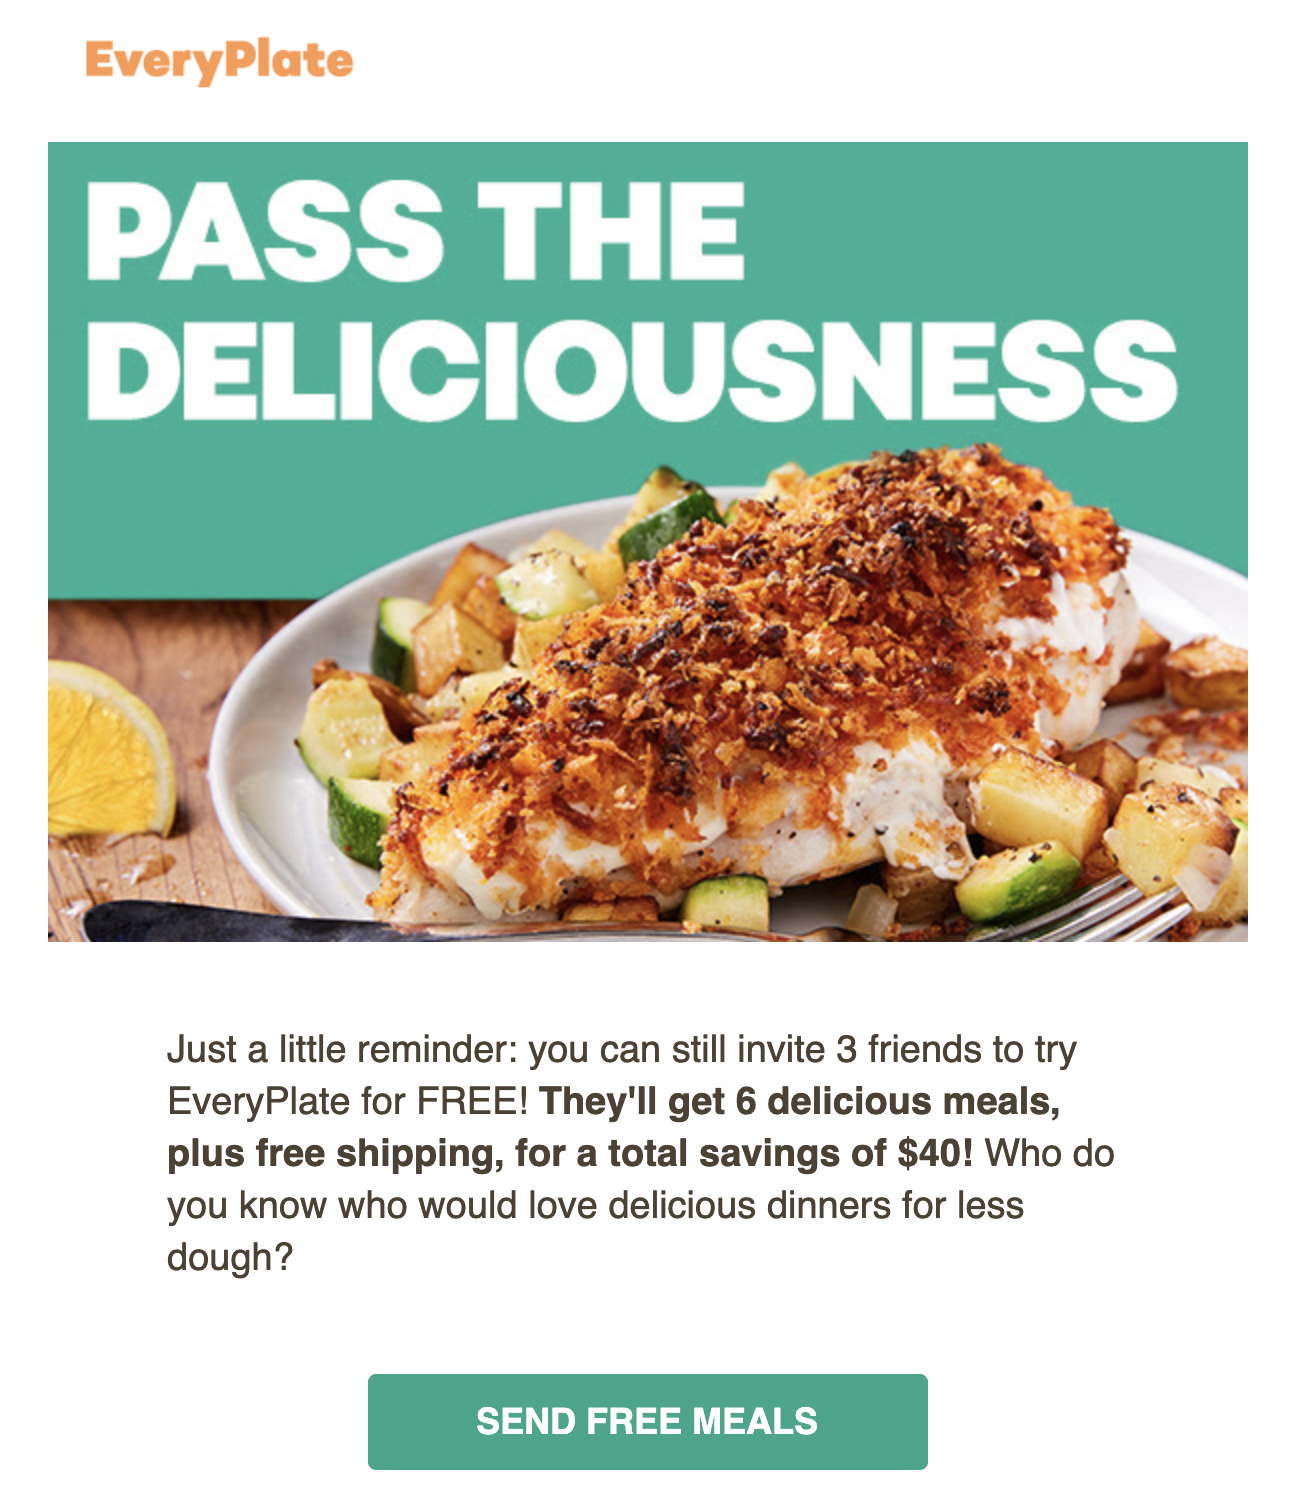 Example of a referral email from EveryPlate